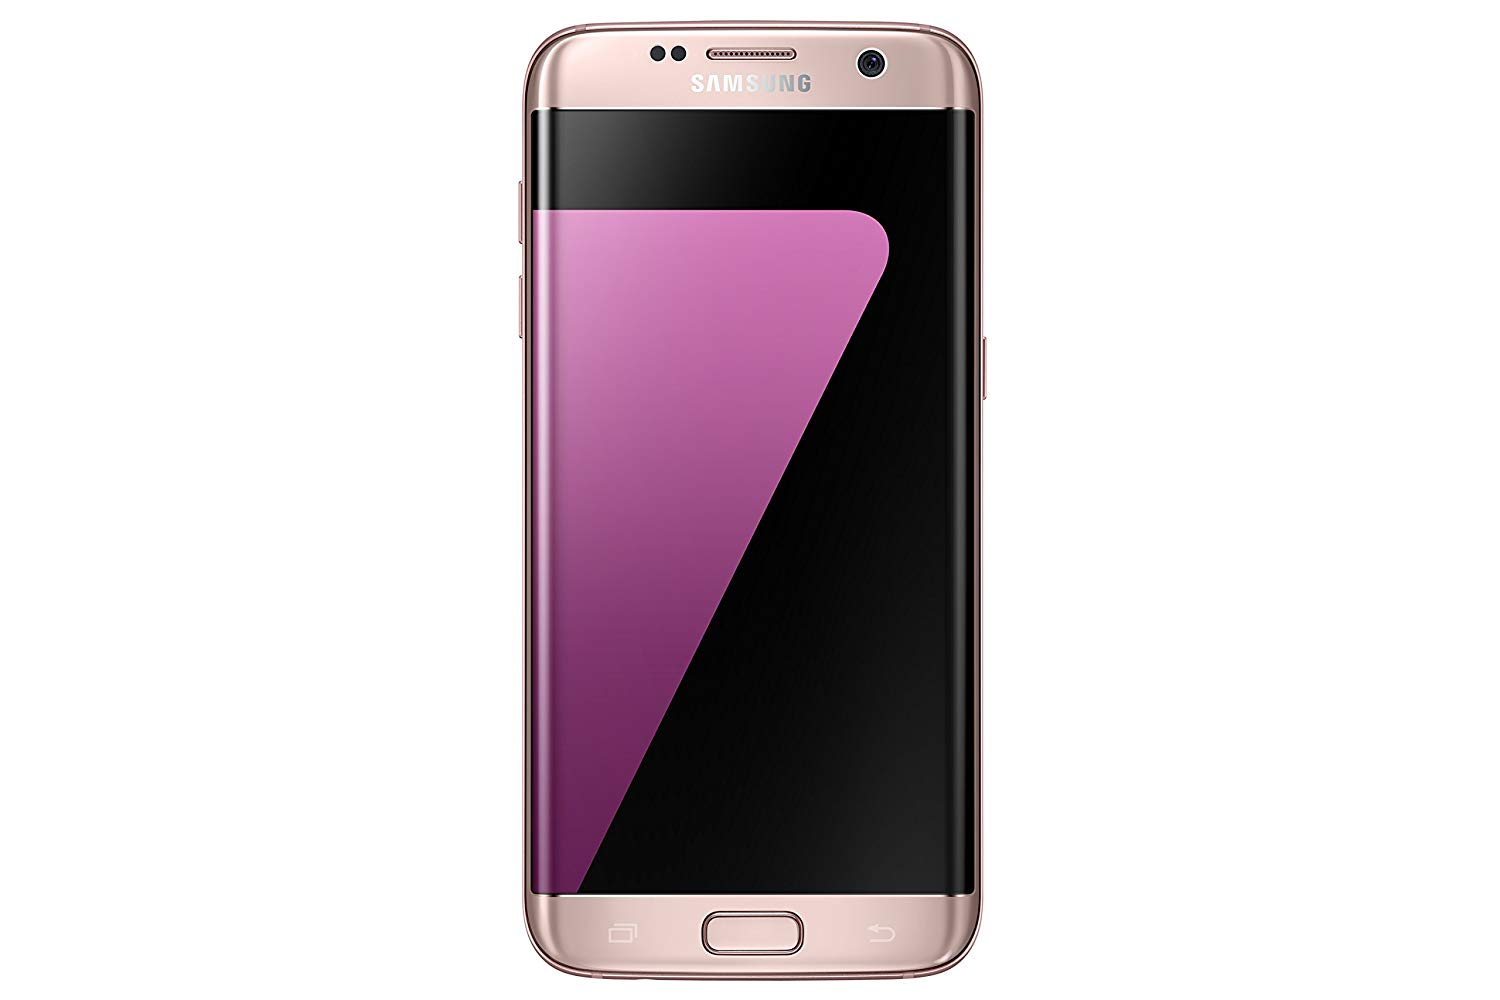 Galaxy S7 Flat 32GB Pink Gold